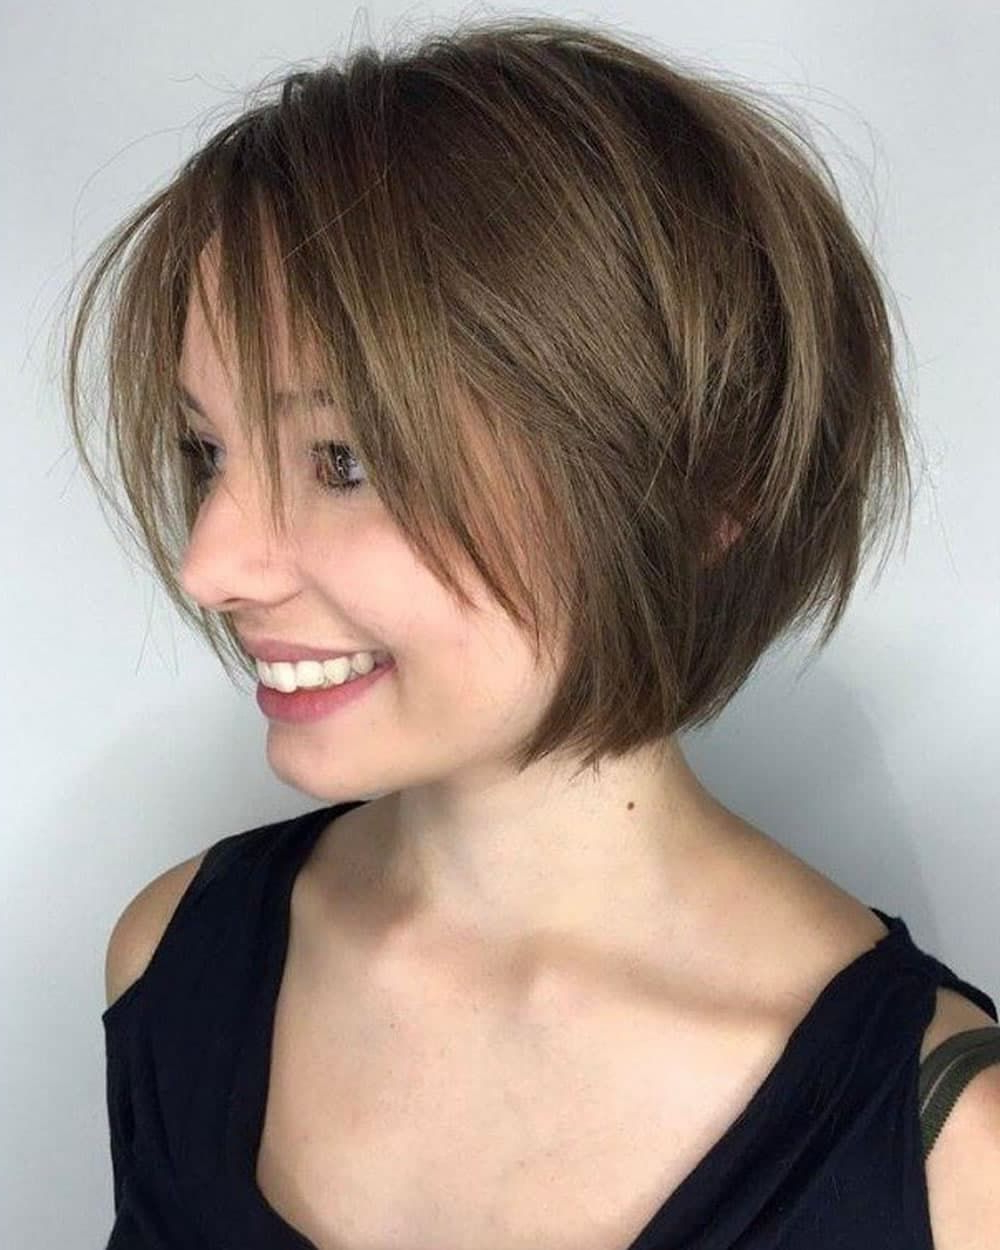 Cute Short Bob Haircuts For Round Faces Womens Hairstyles Inside Trendy Rounded Short Bob Hairstyles (View 3 of 20)